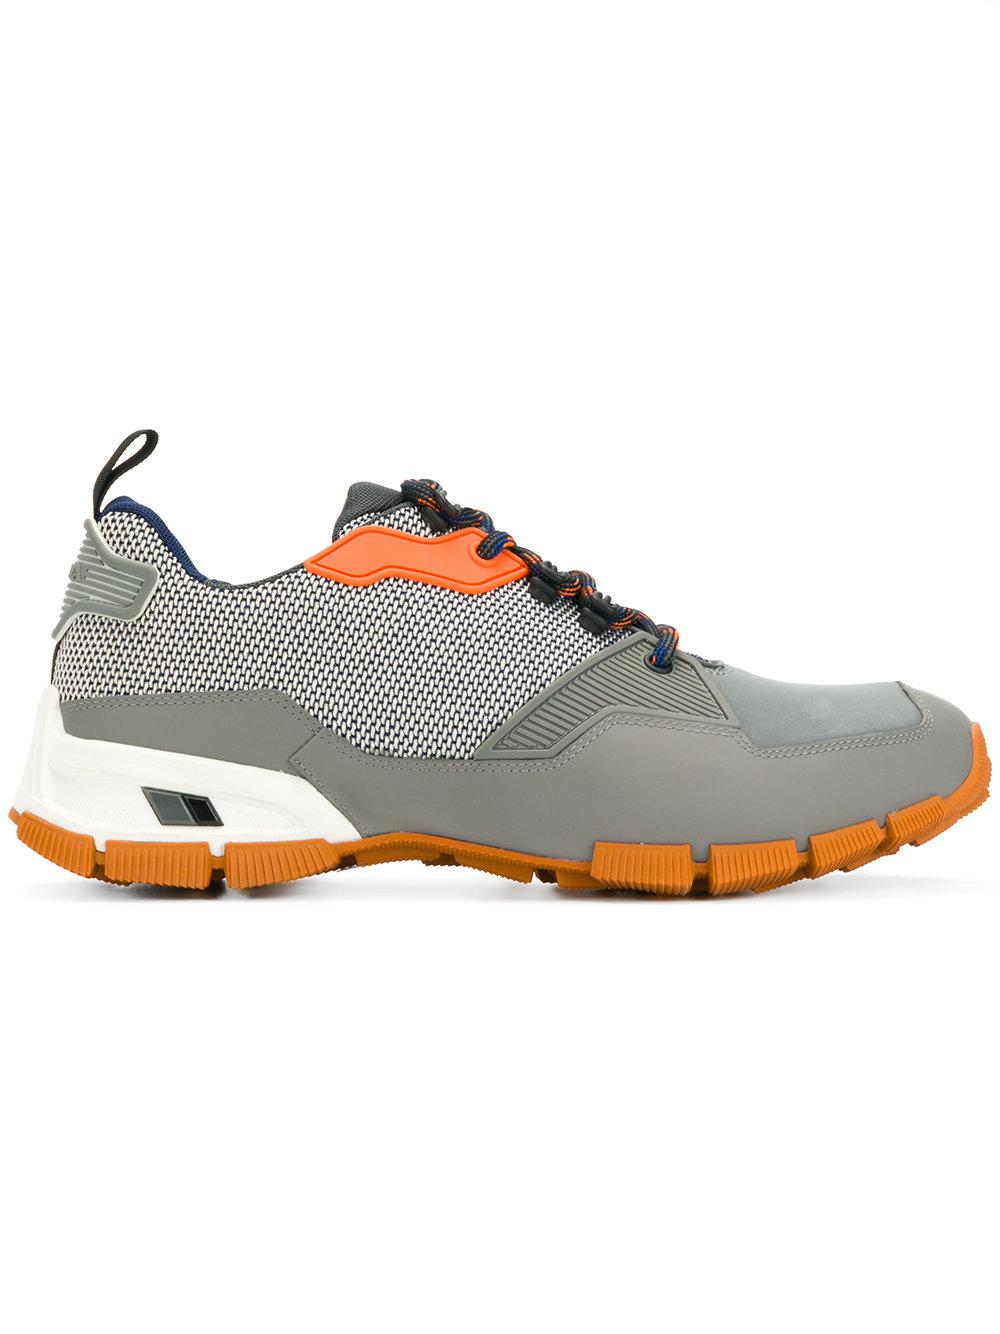 fa53b710f77 Lyst - Prada Lace-up Sneakers in Gray for Men